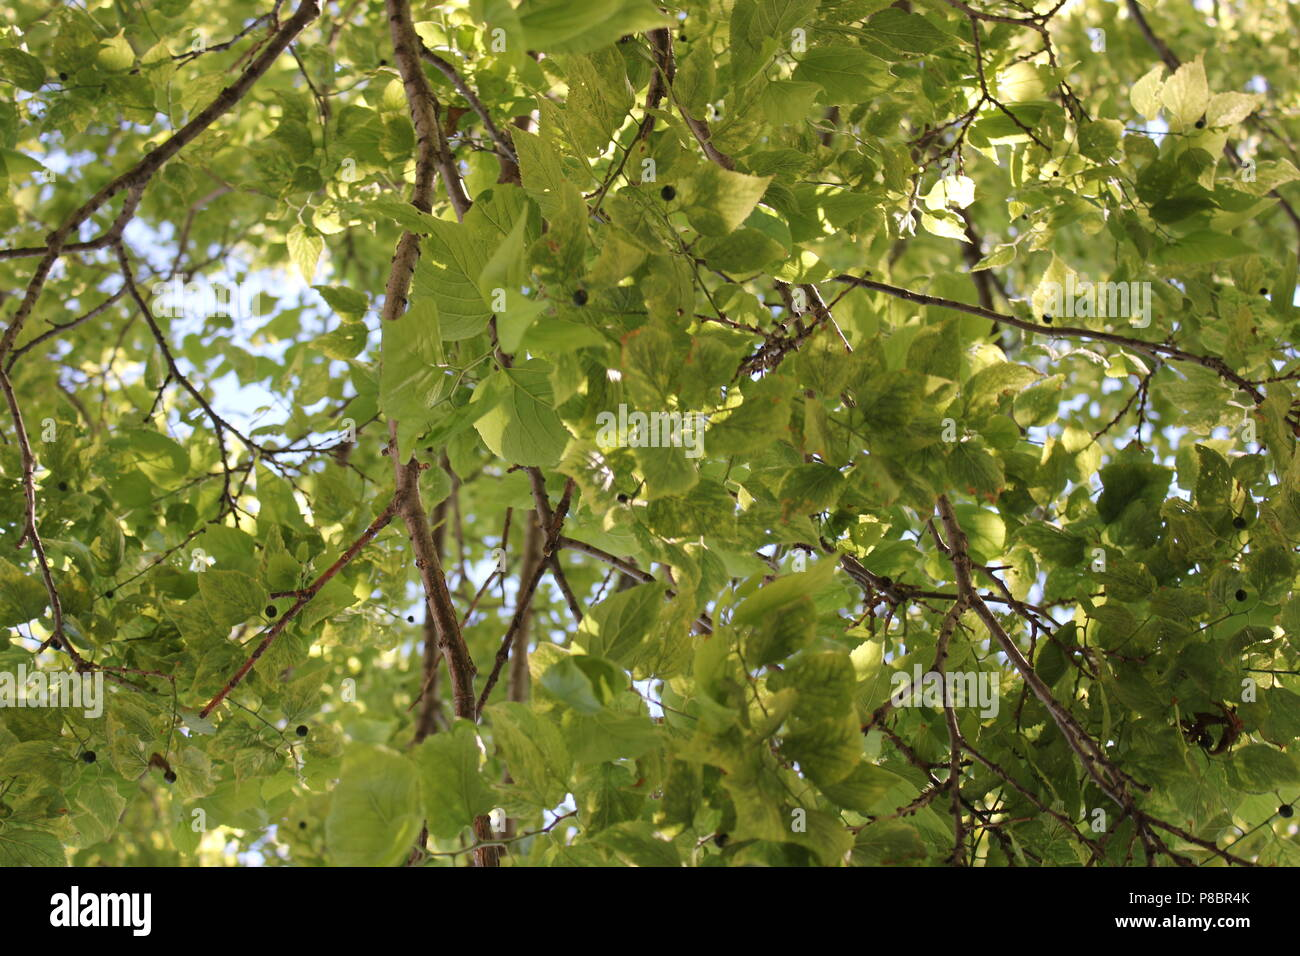 Looking up at a leafy tree at the Northwestern University's landfill park in Evanston, Illinois on a bright sunny summer day. - Stock Image